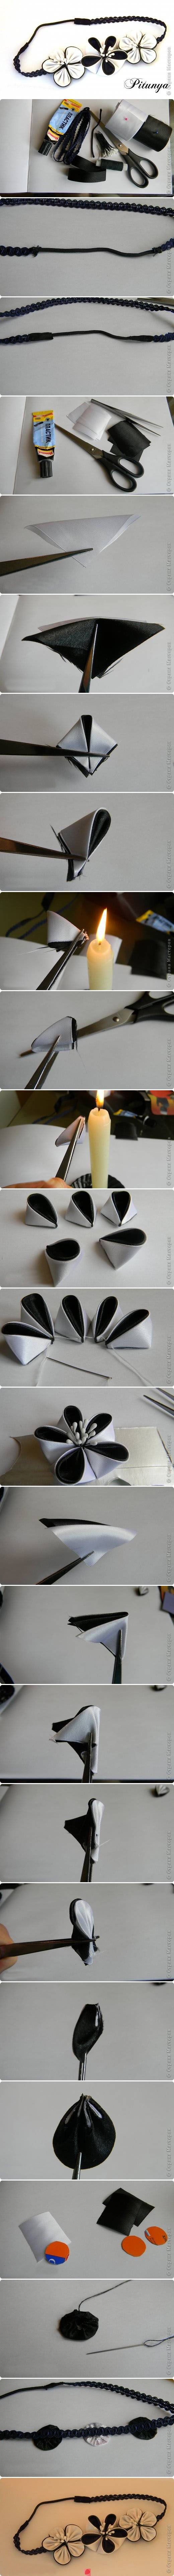 Black headbands for crafts - Find This Pin And More On Diy Crafts That I Love